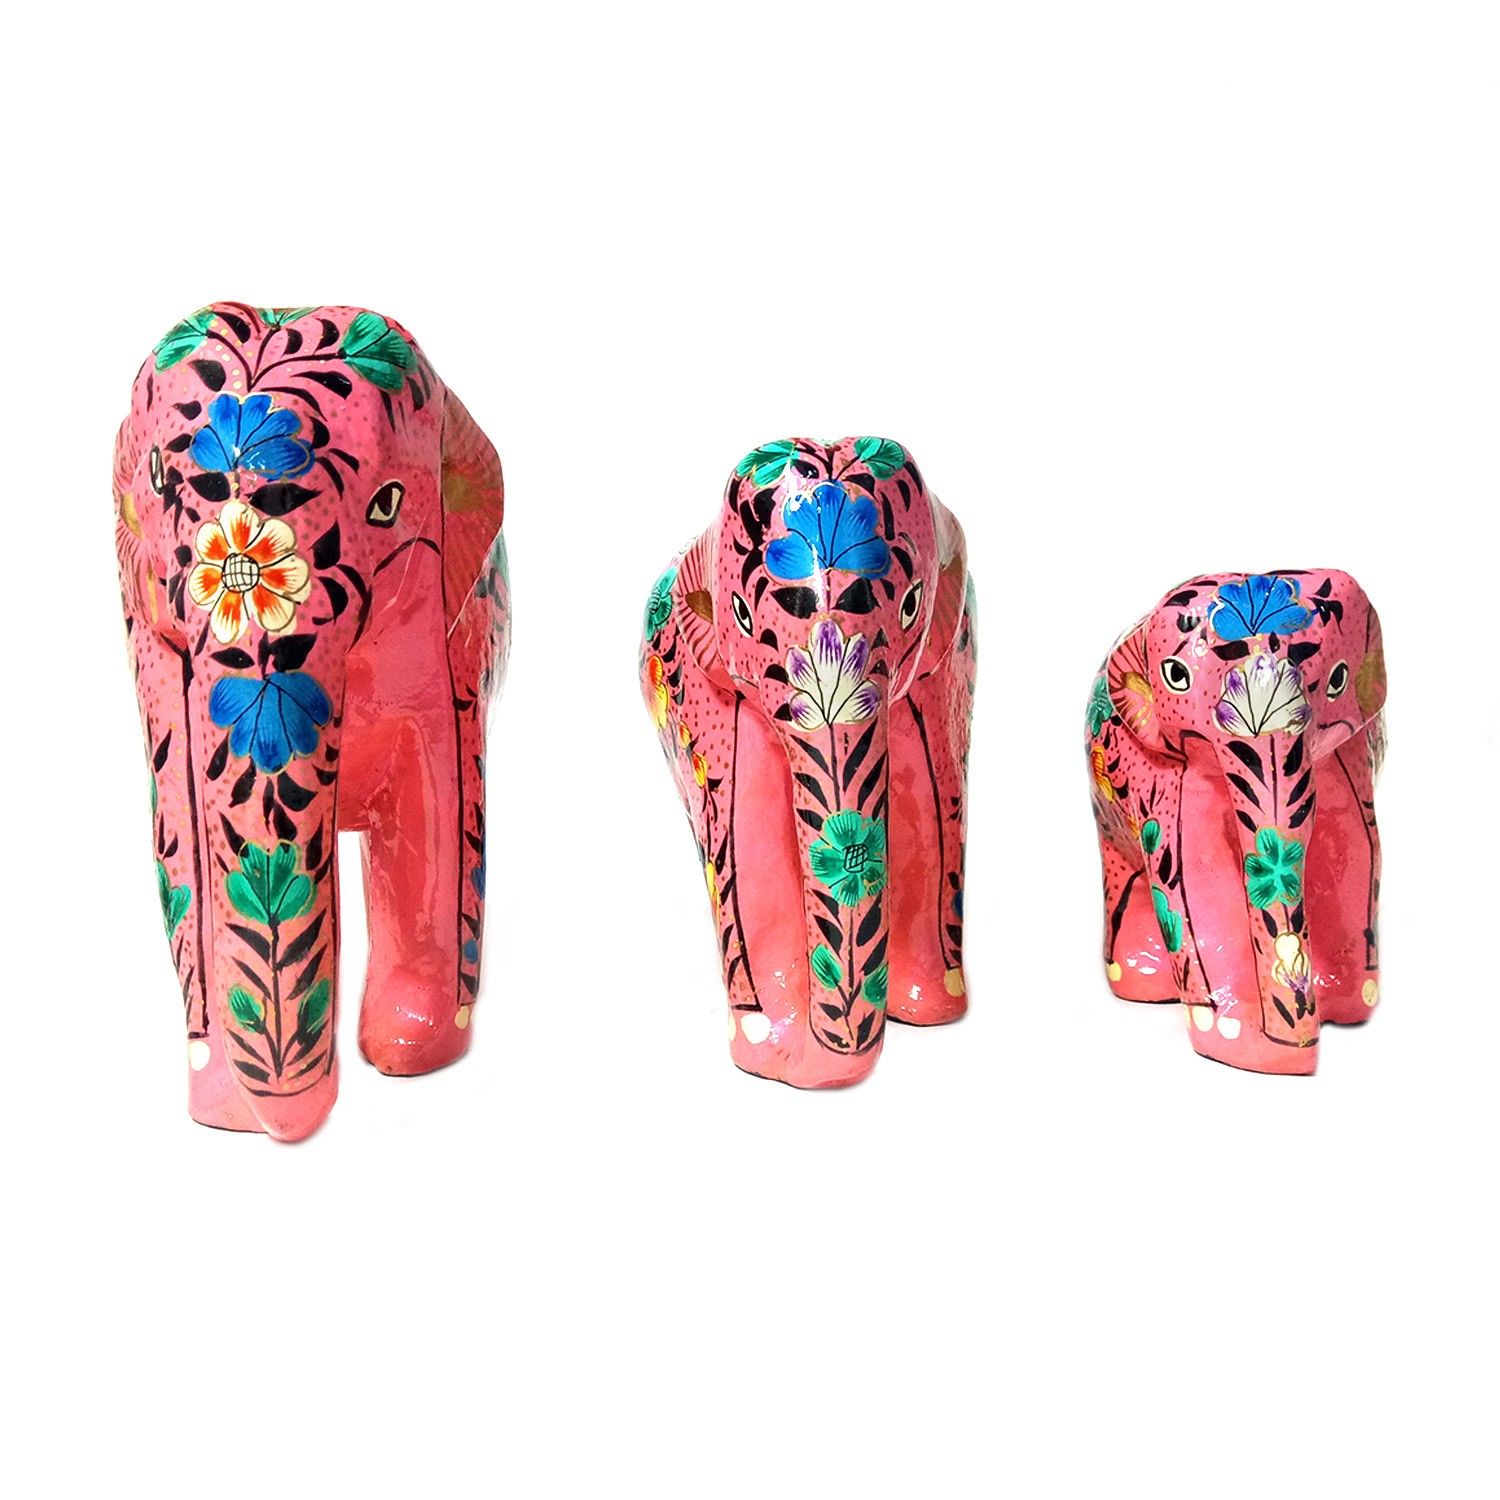 Handmade exclusive paper mache Pink Elephant Set of 3 By Rural Artisan.